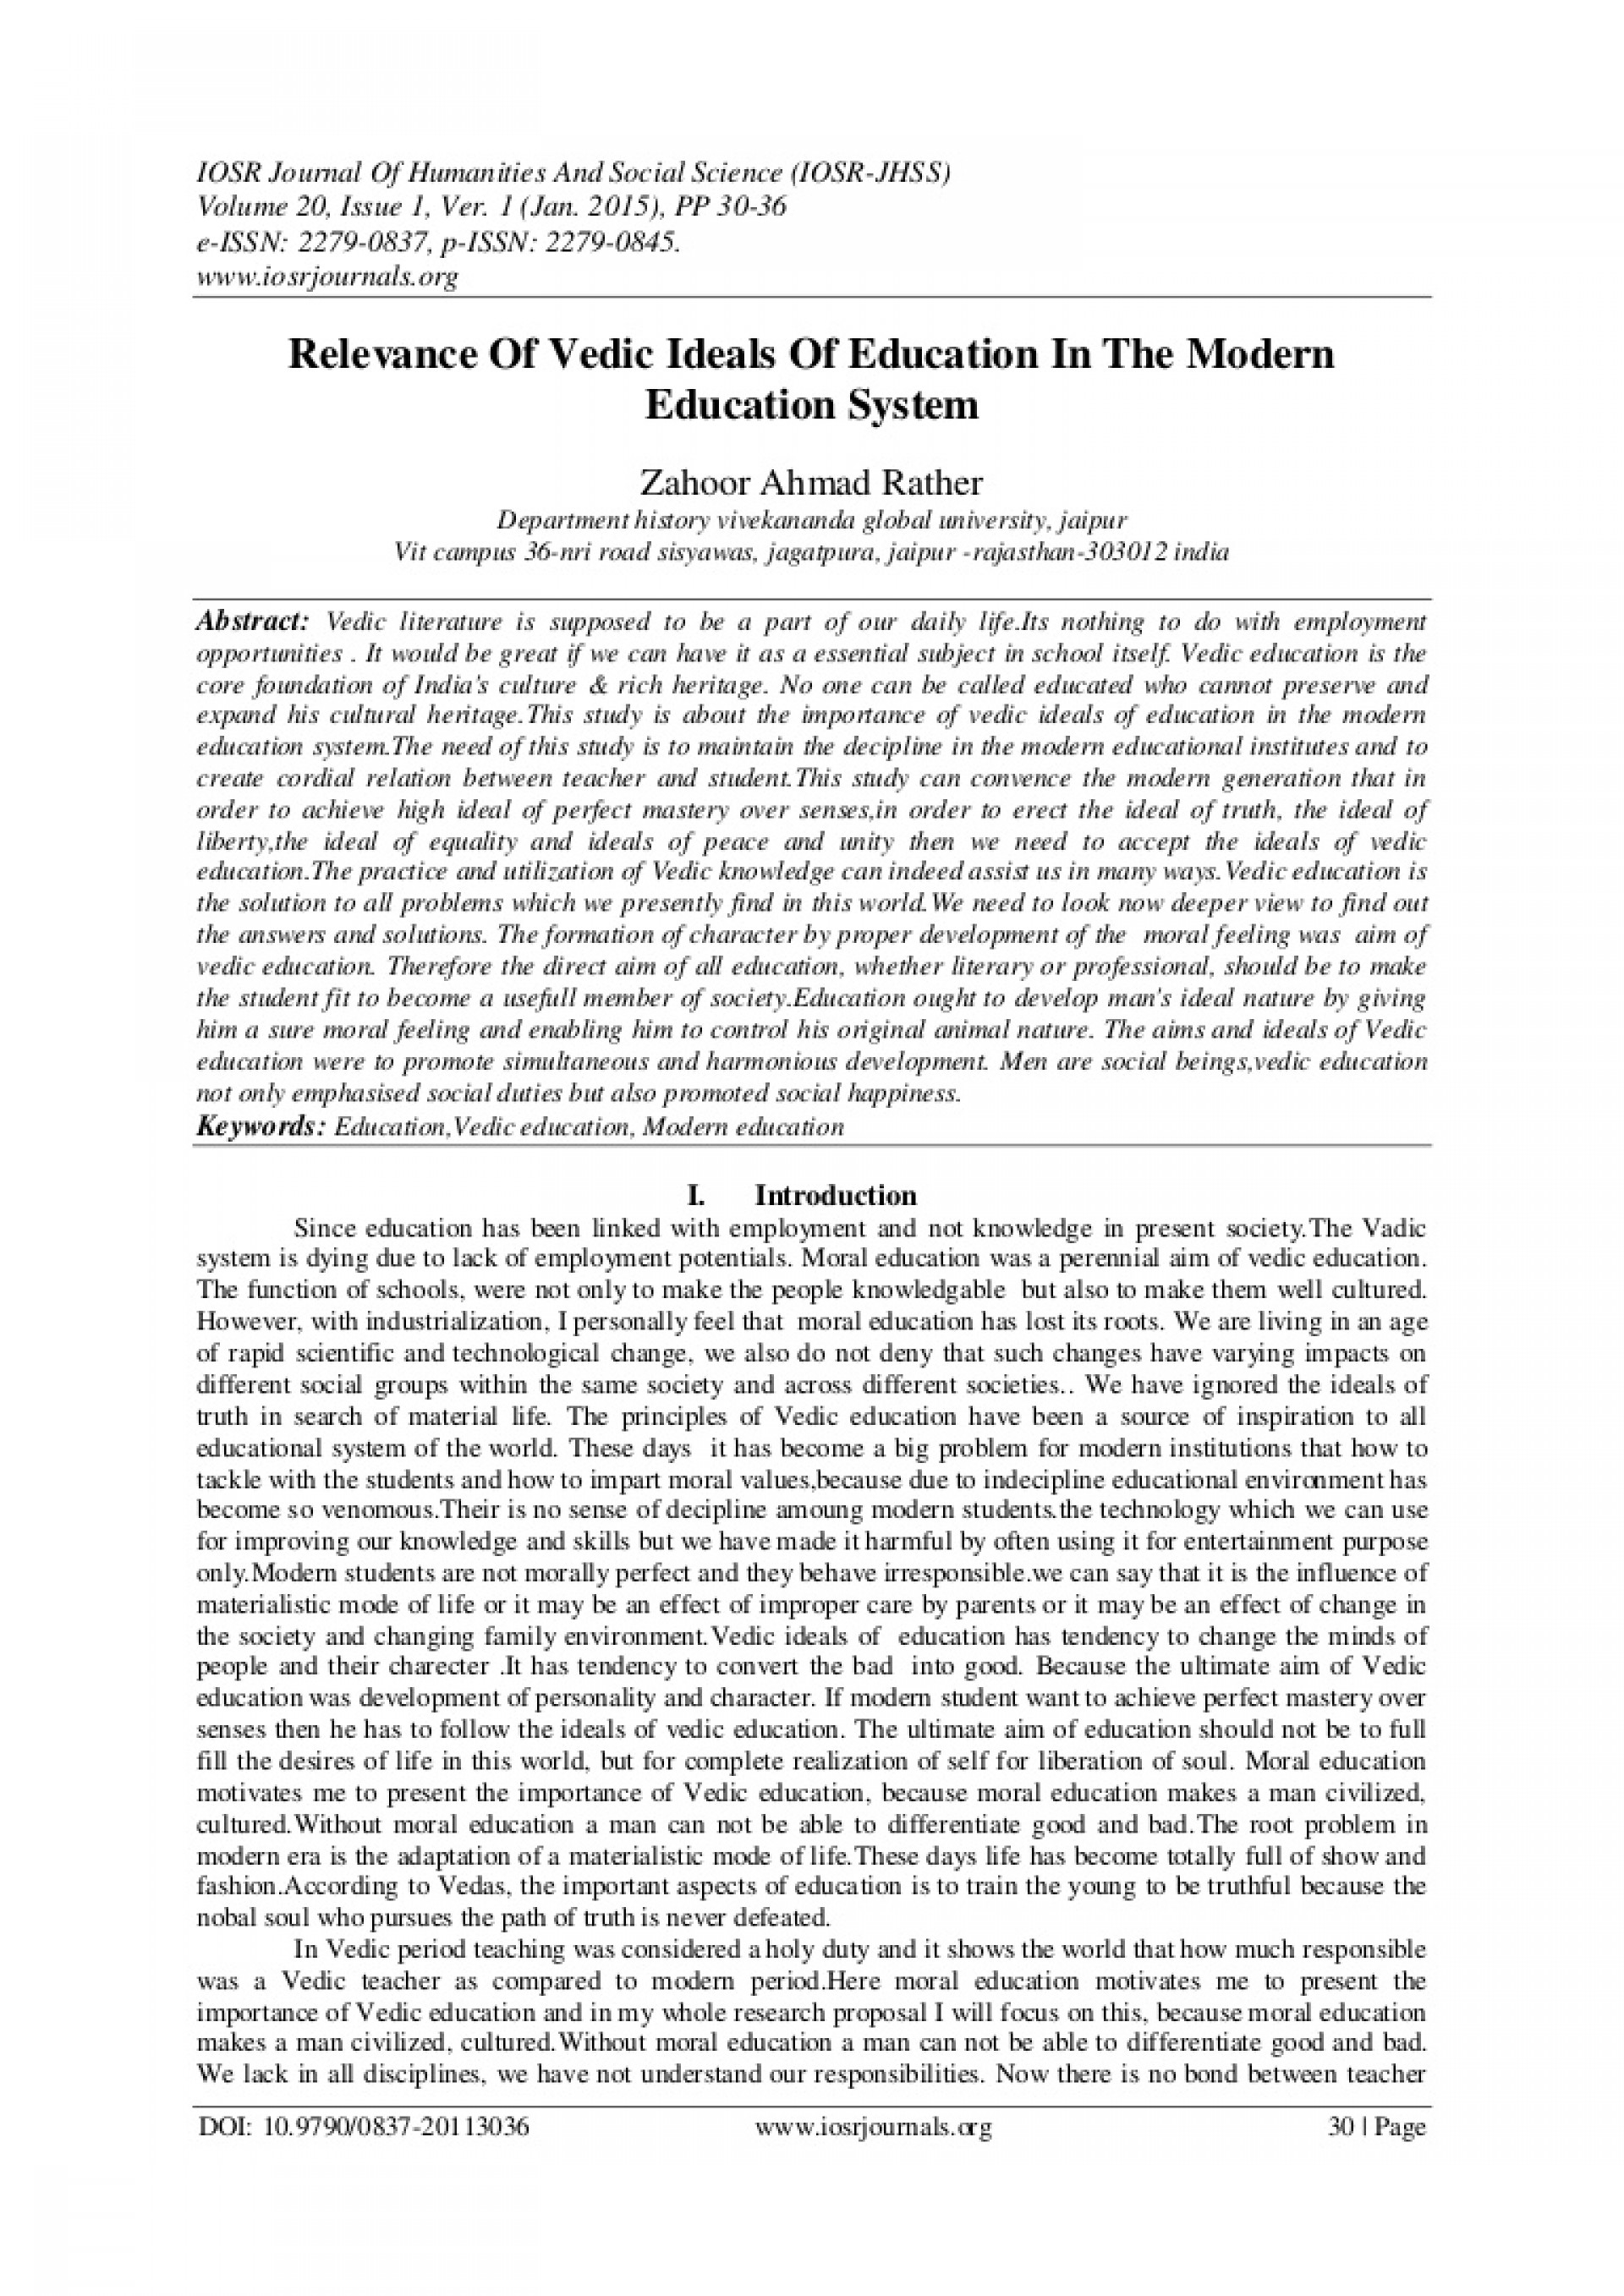 essay on current education system in india